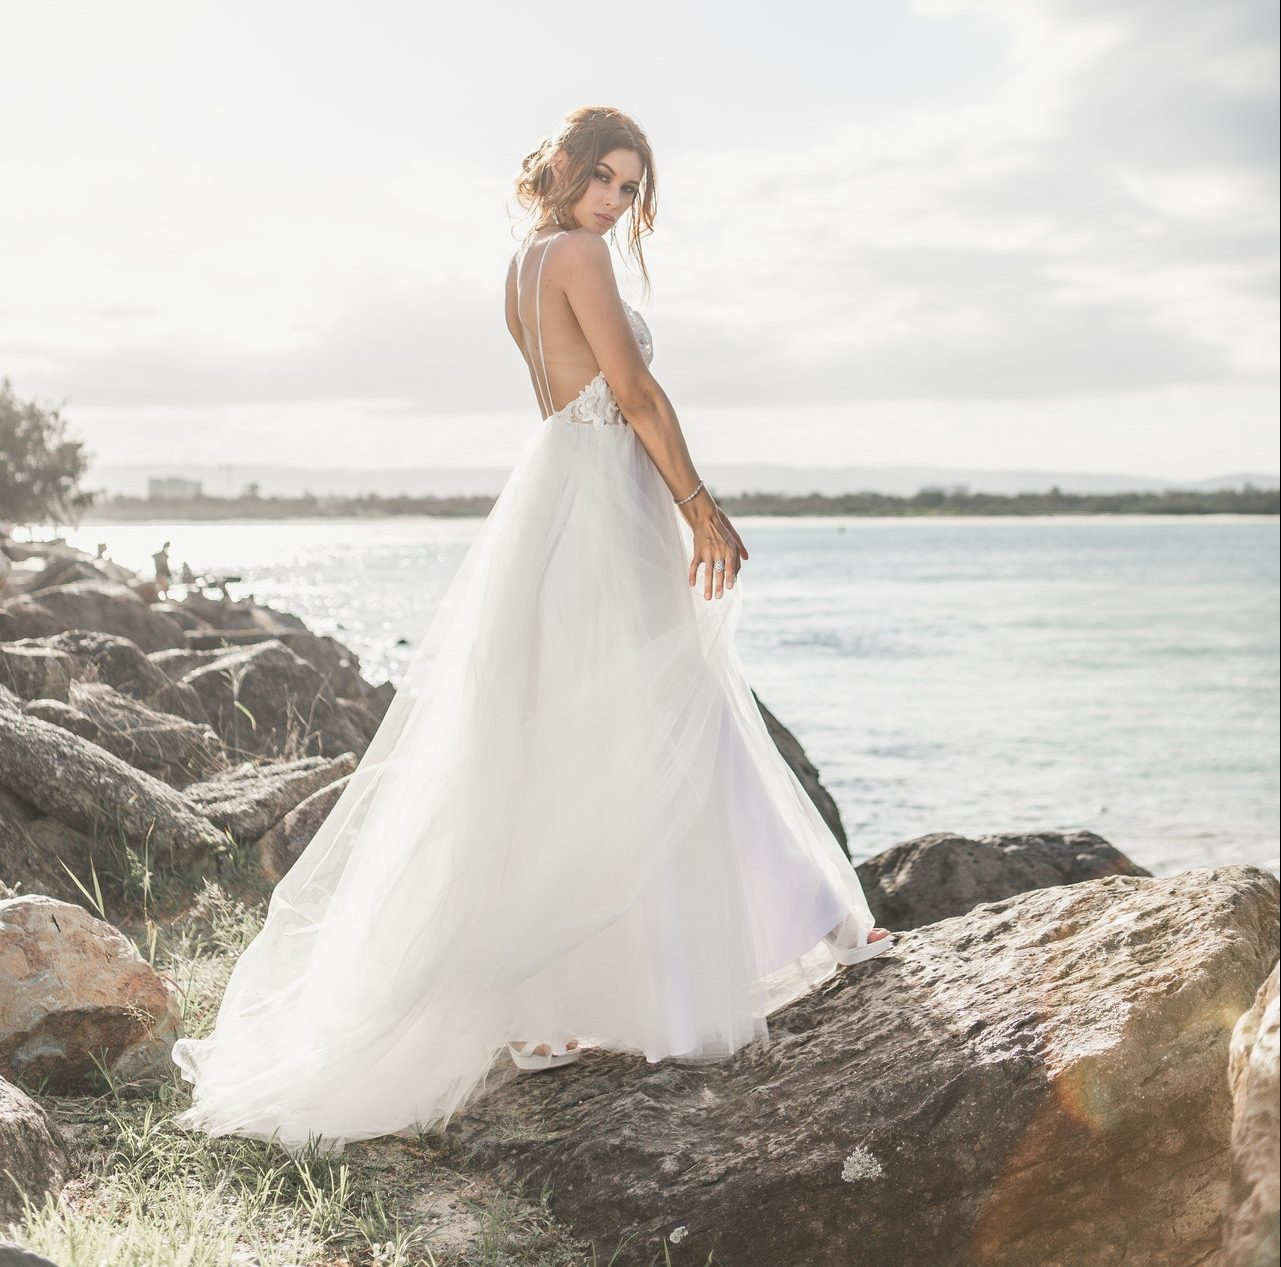 Things to Keep in Mind While Buying Your Affordable Wedding Dress